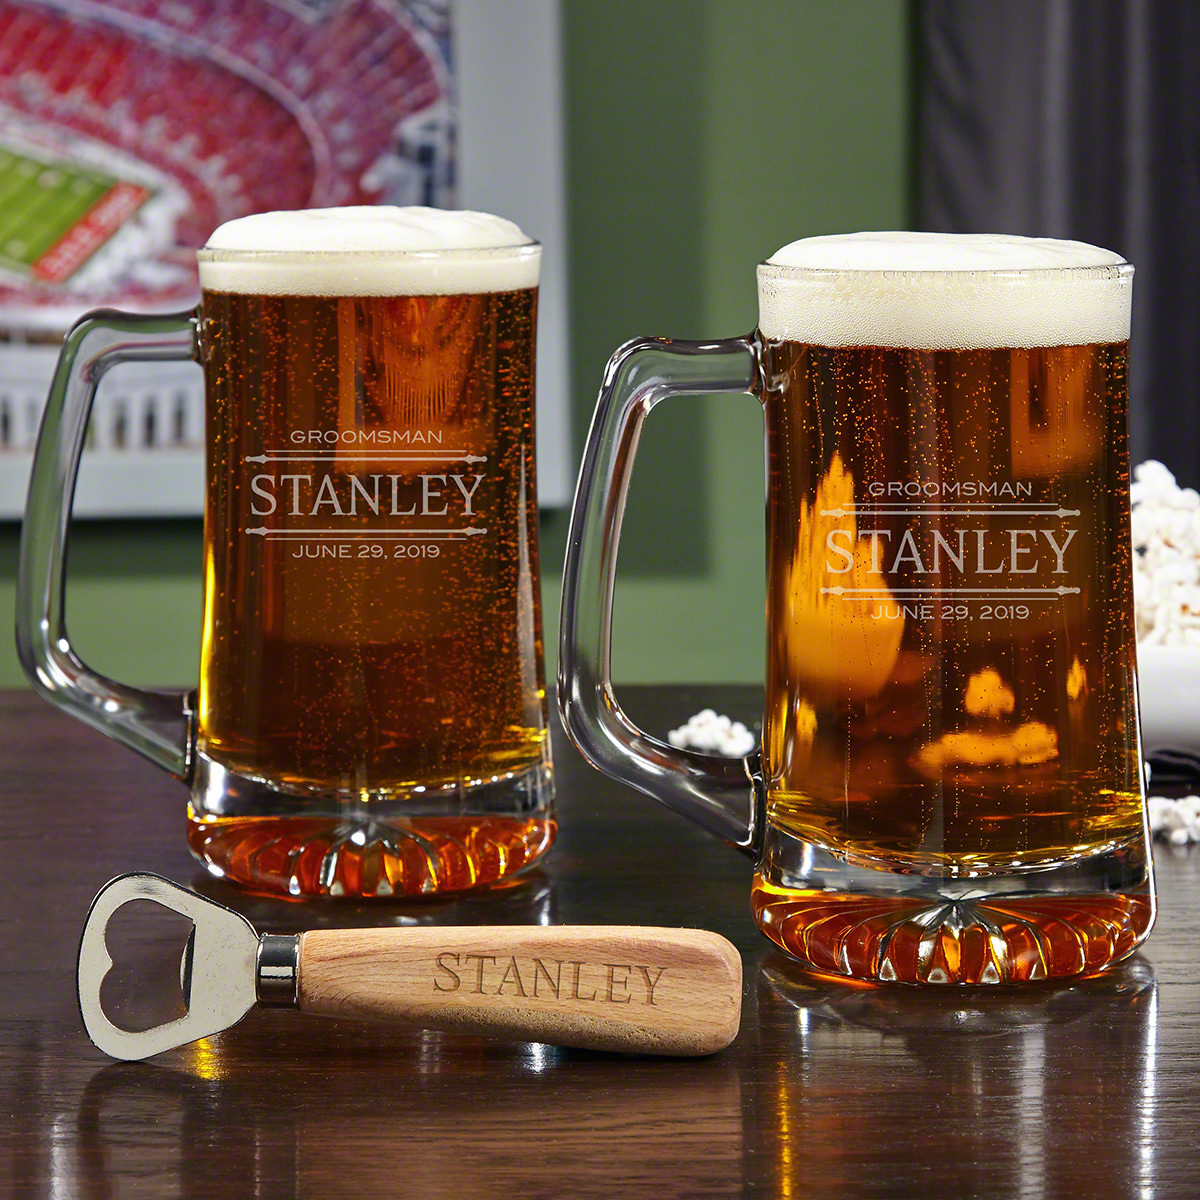 Stanford Custom Groomsmen Beer Mugs & Bottle Opener